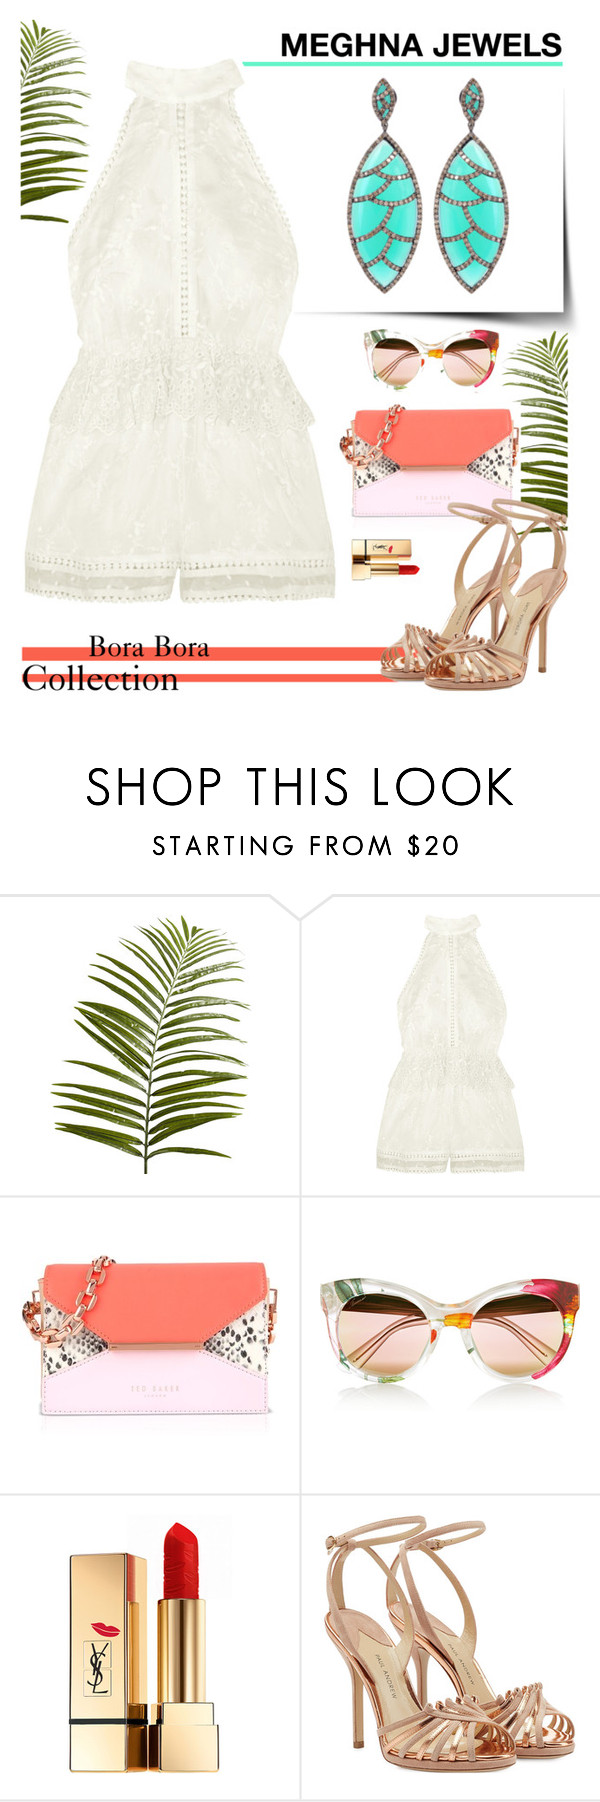 """""""MEGHNA JEWELS-Bora Bora collection"""" by gabyidc ❤ liked on Polyvore featuring Pier 1 Imports, Zimmermann, Ted Baker, Gucci, Yves Saint Laurent and Paul Andrew"""